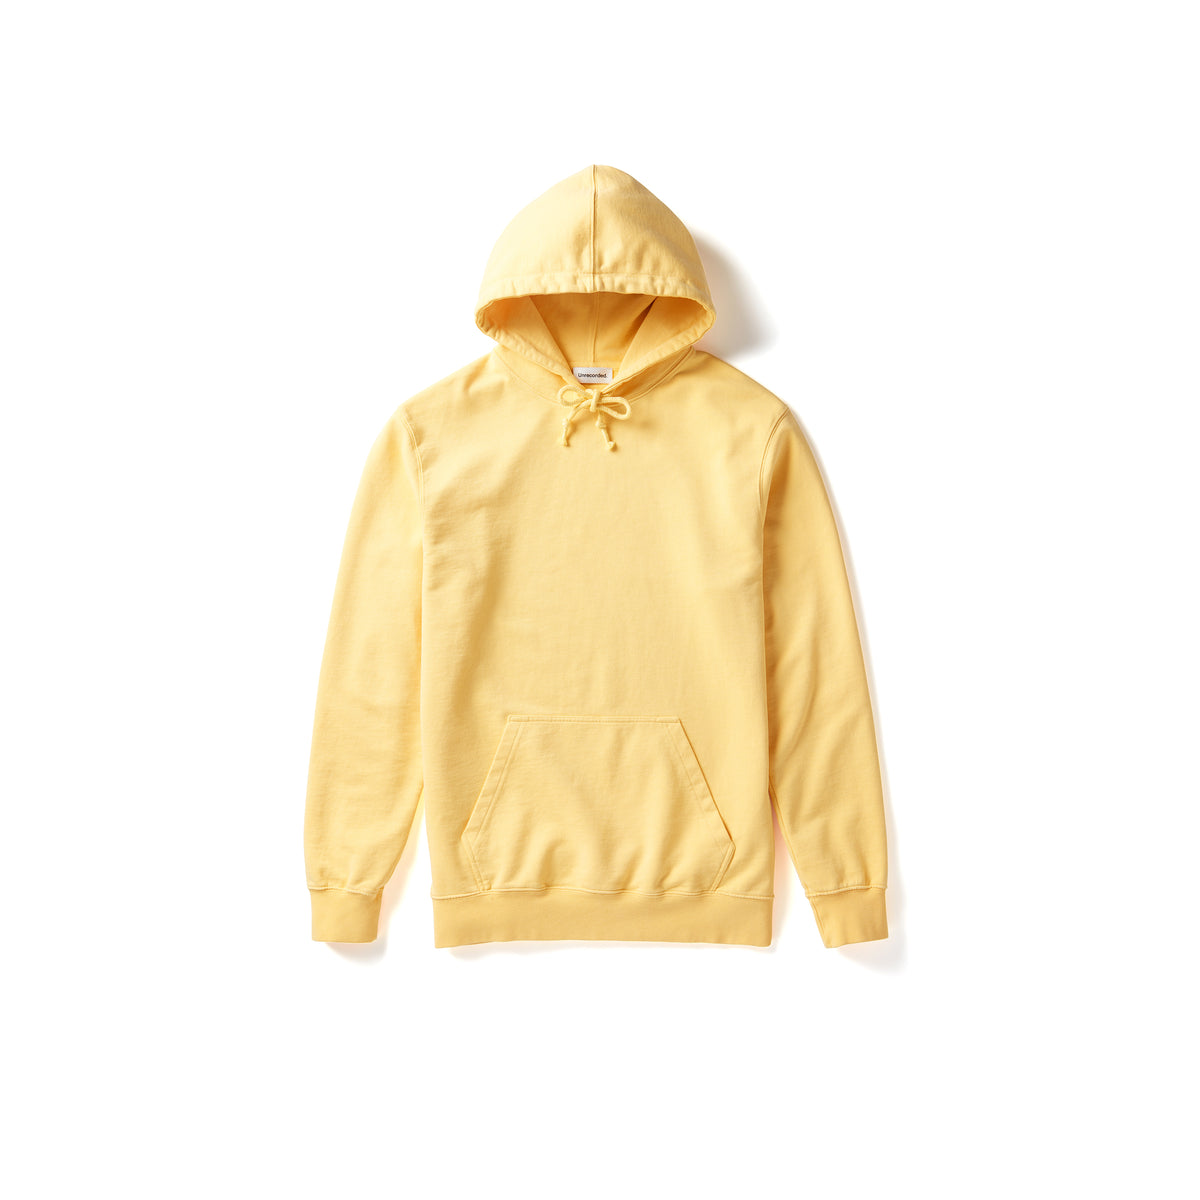 Hoodie Yellow - Unrecorded